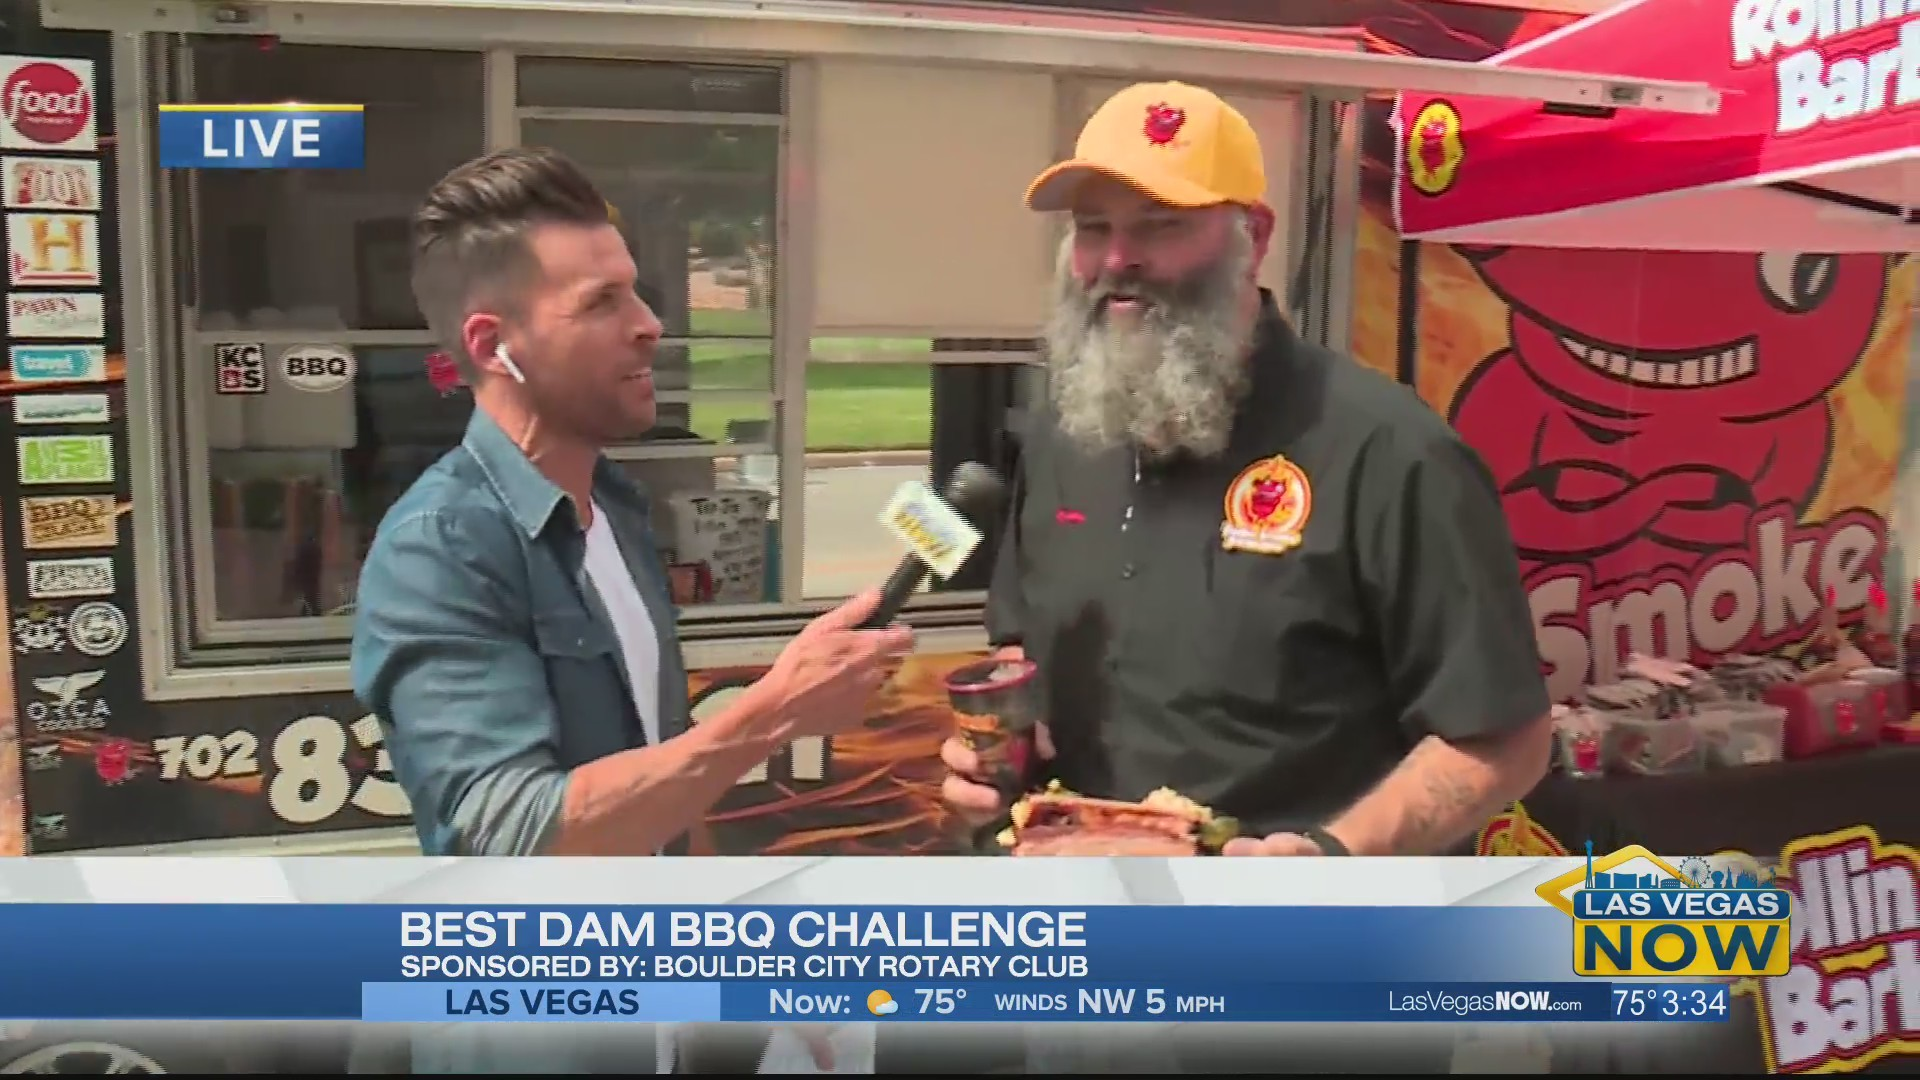 The Best Dam BBQ Challenge is a family fun event